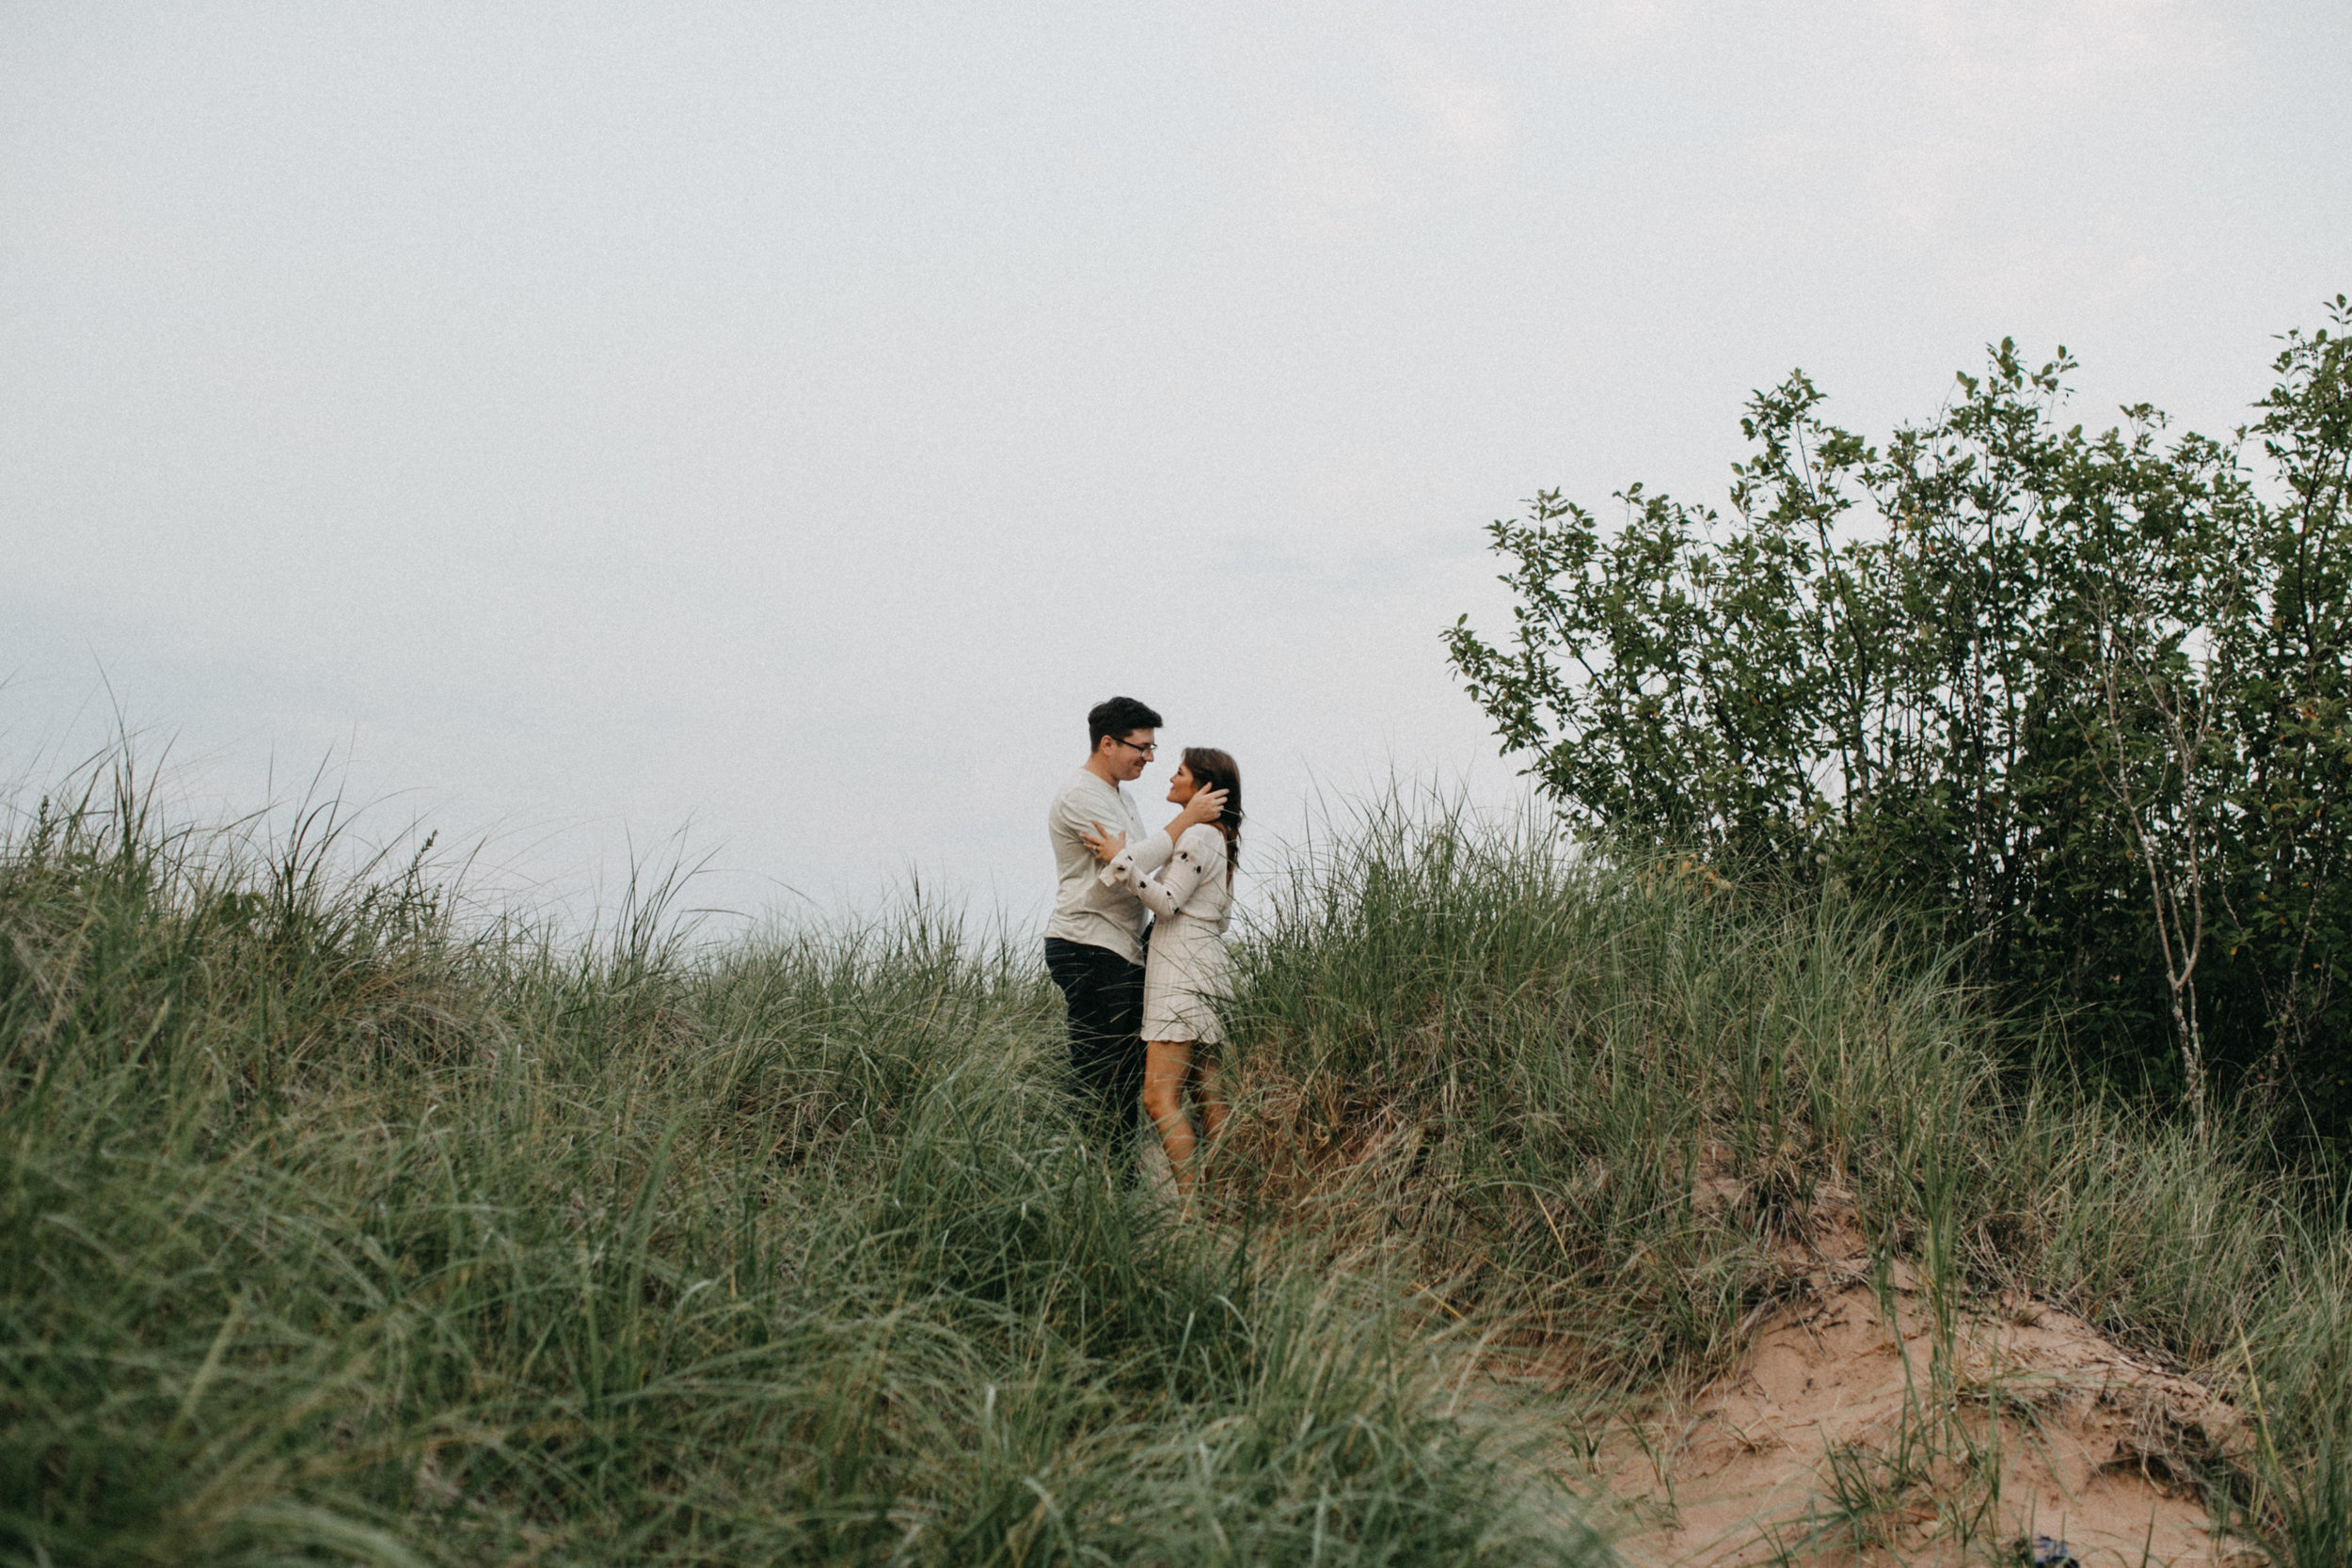 Intimate and emotional engagement photography on the north shore in Duluth Minnesota by Britt DeZeeuw